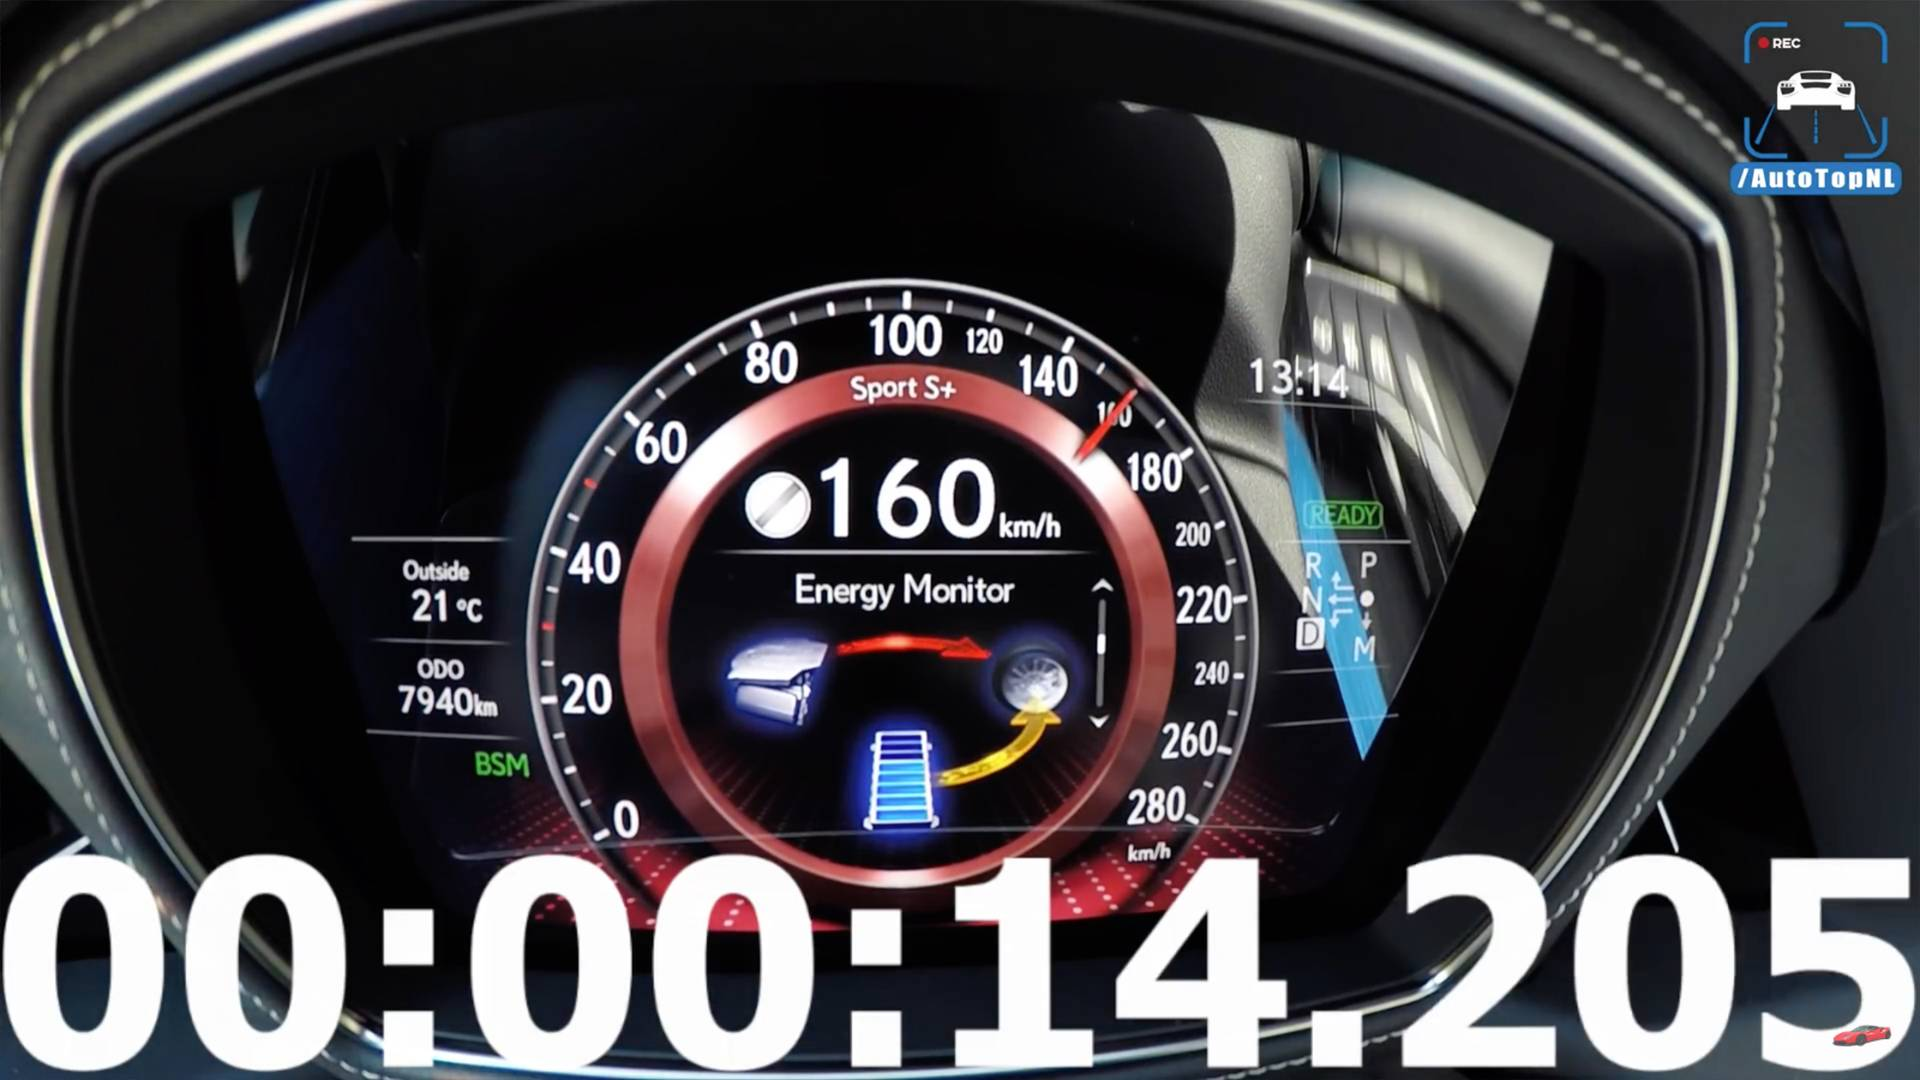 How Much Time Does The Lexus LS 500h Need To Hit 157 MPH?